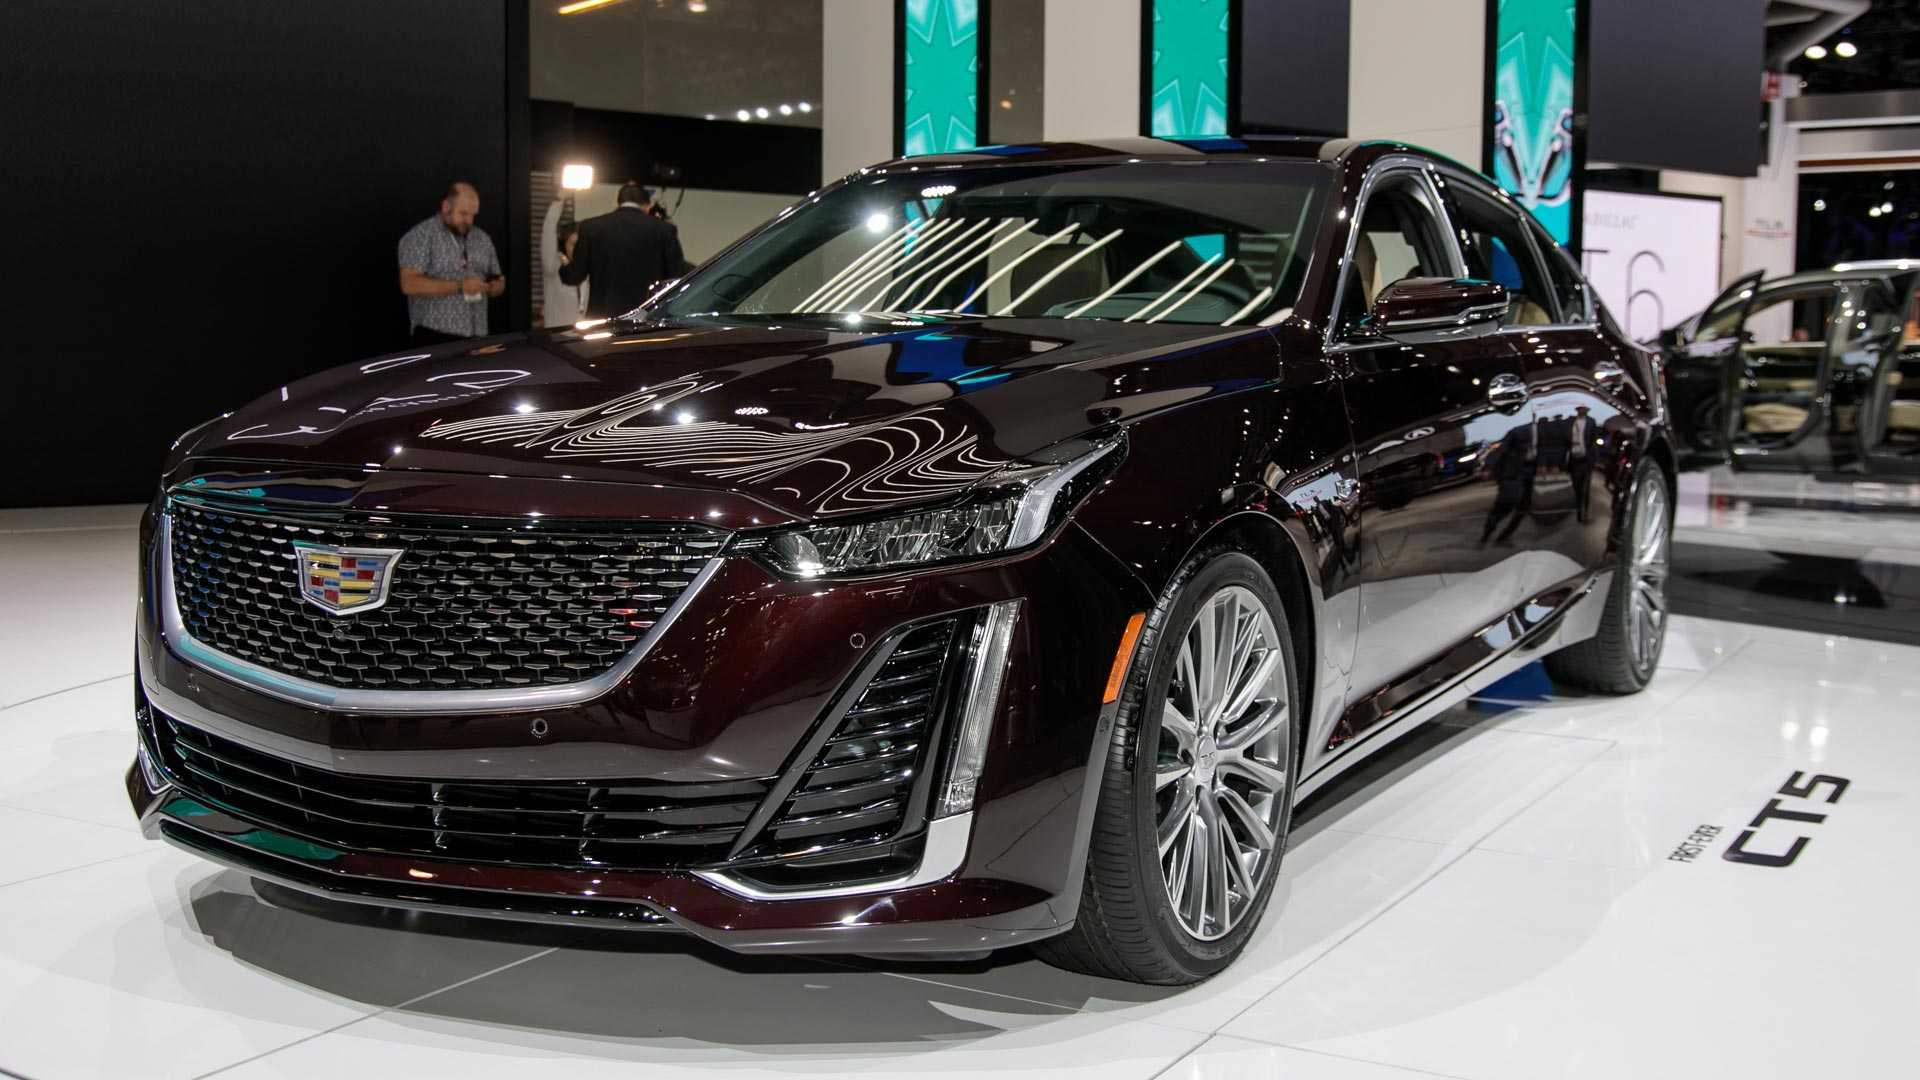 74 Concept of Cadillac Ats 2020 Pictures by Cadillac Ats 2020